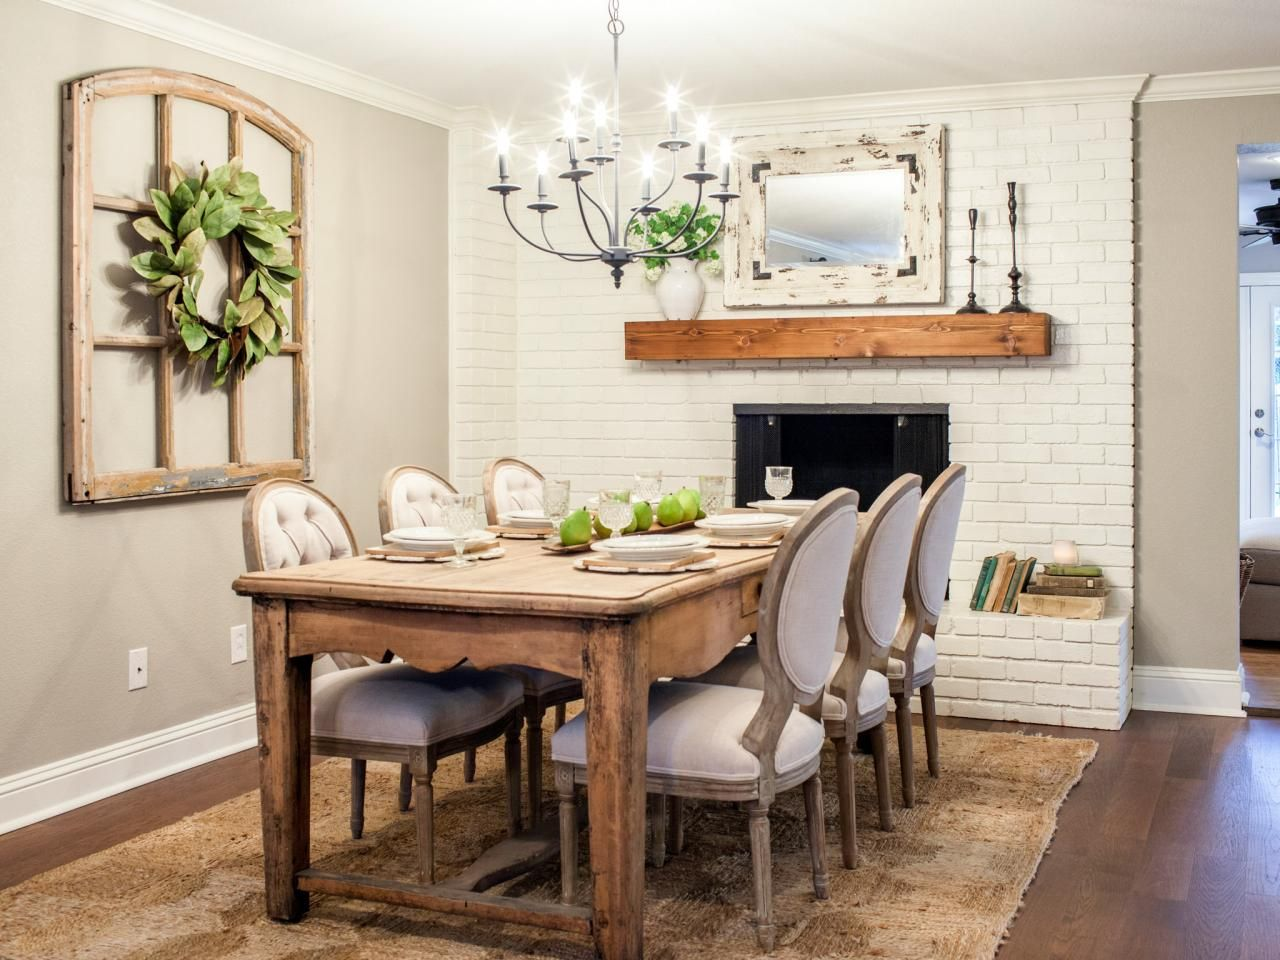 Fixer upper kitchen gallery - 28 Signs You Re A Fixer Upper Fanatic Hgtv S Fixer Upper With Chip And